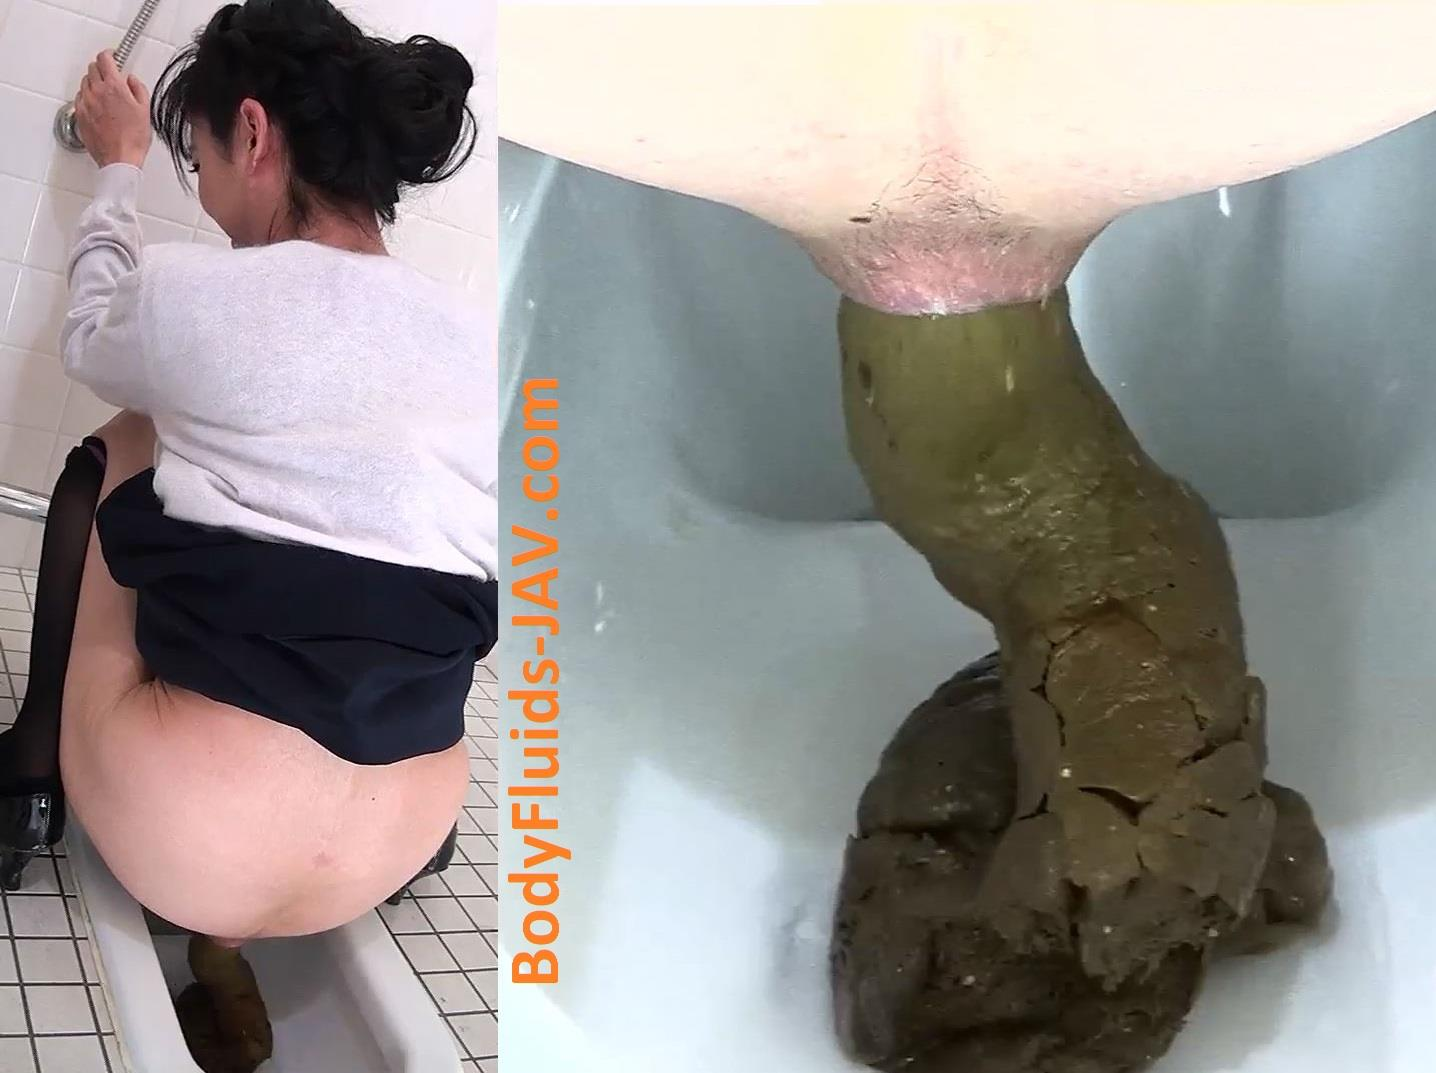 Girls pooping voyeur toilet